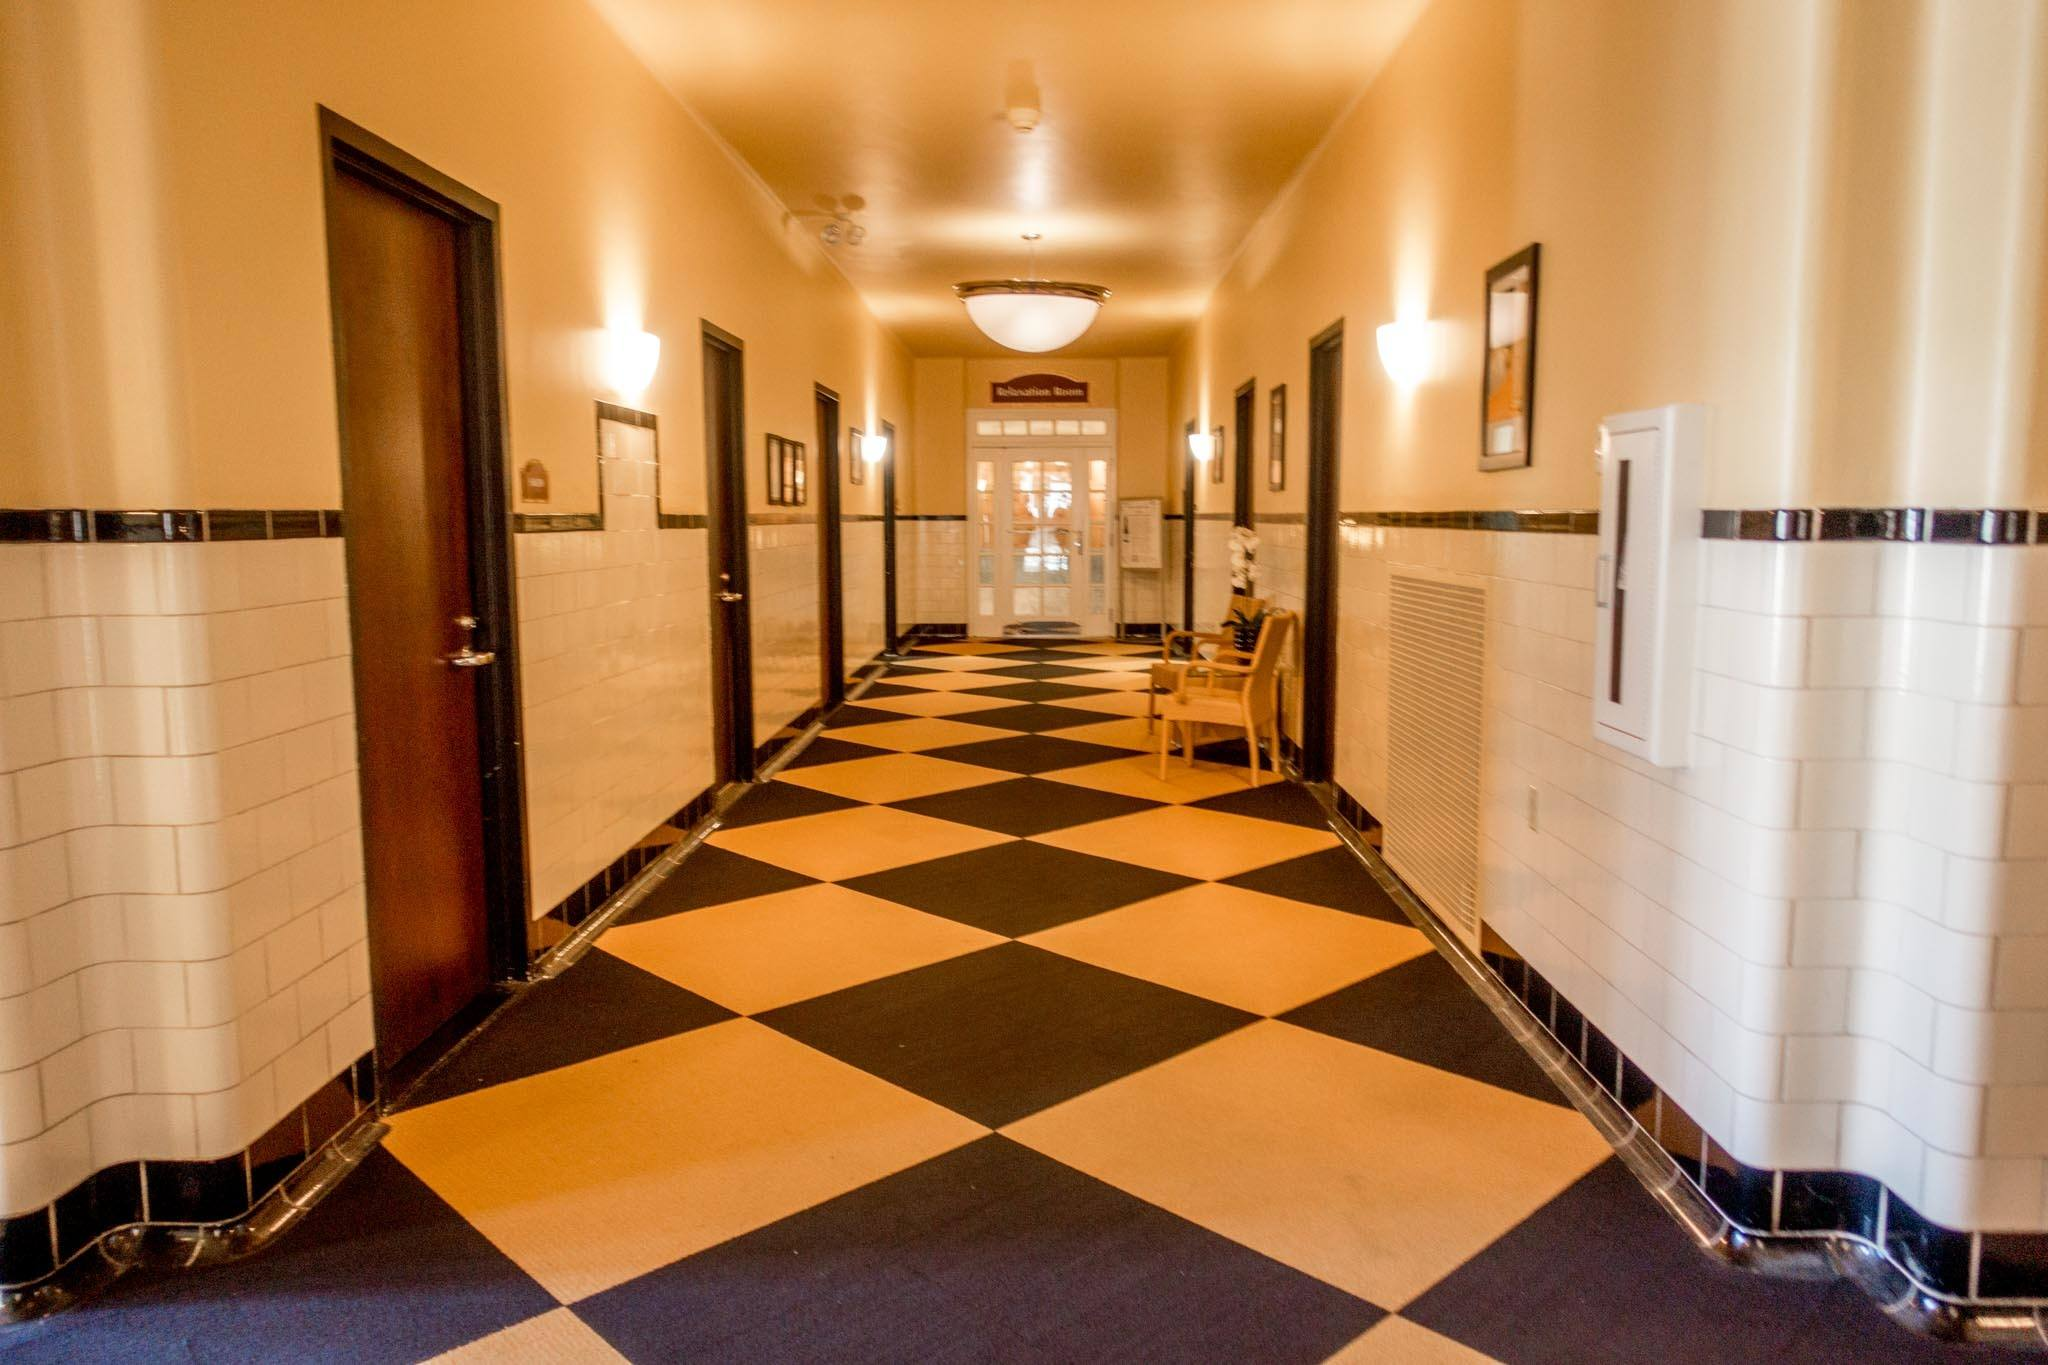 Tiled hallway at Roosevelt Baths & Spa